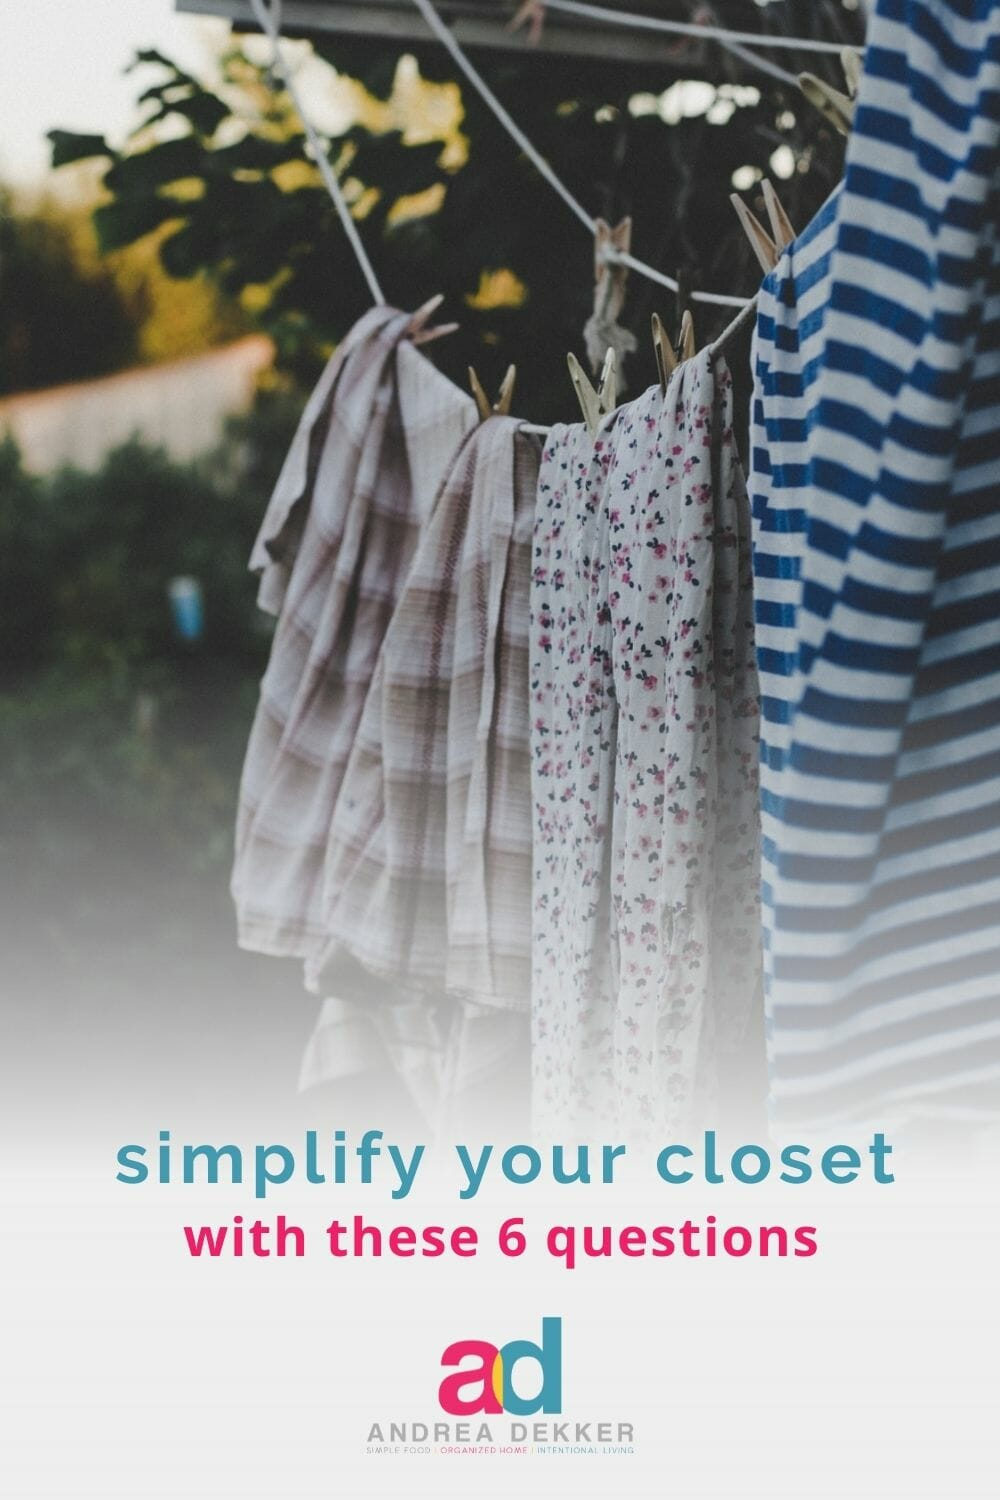 Want more breathing room in your closet and a wardrobe you actually like? Answer these 6 questions and you'll be on your way to a simpler, more organized closet! via @andreadekker